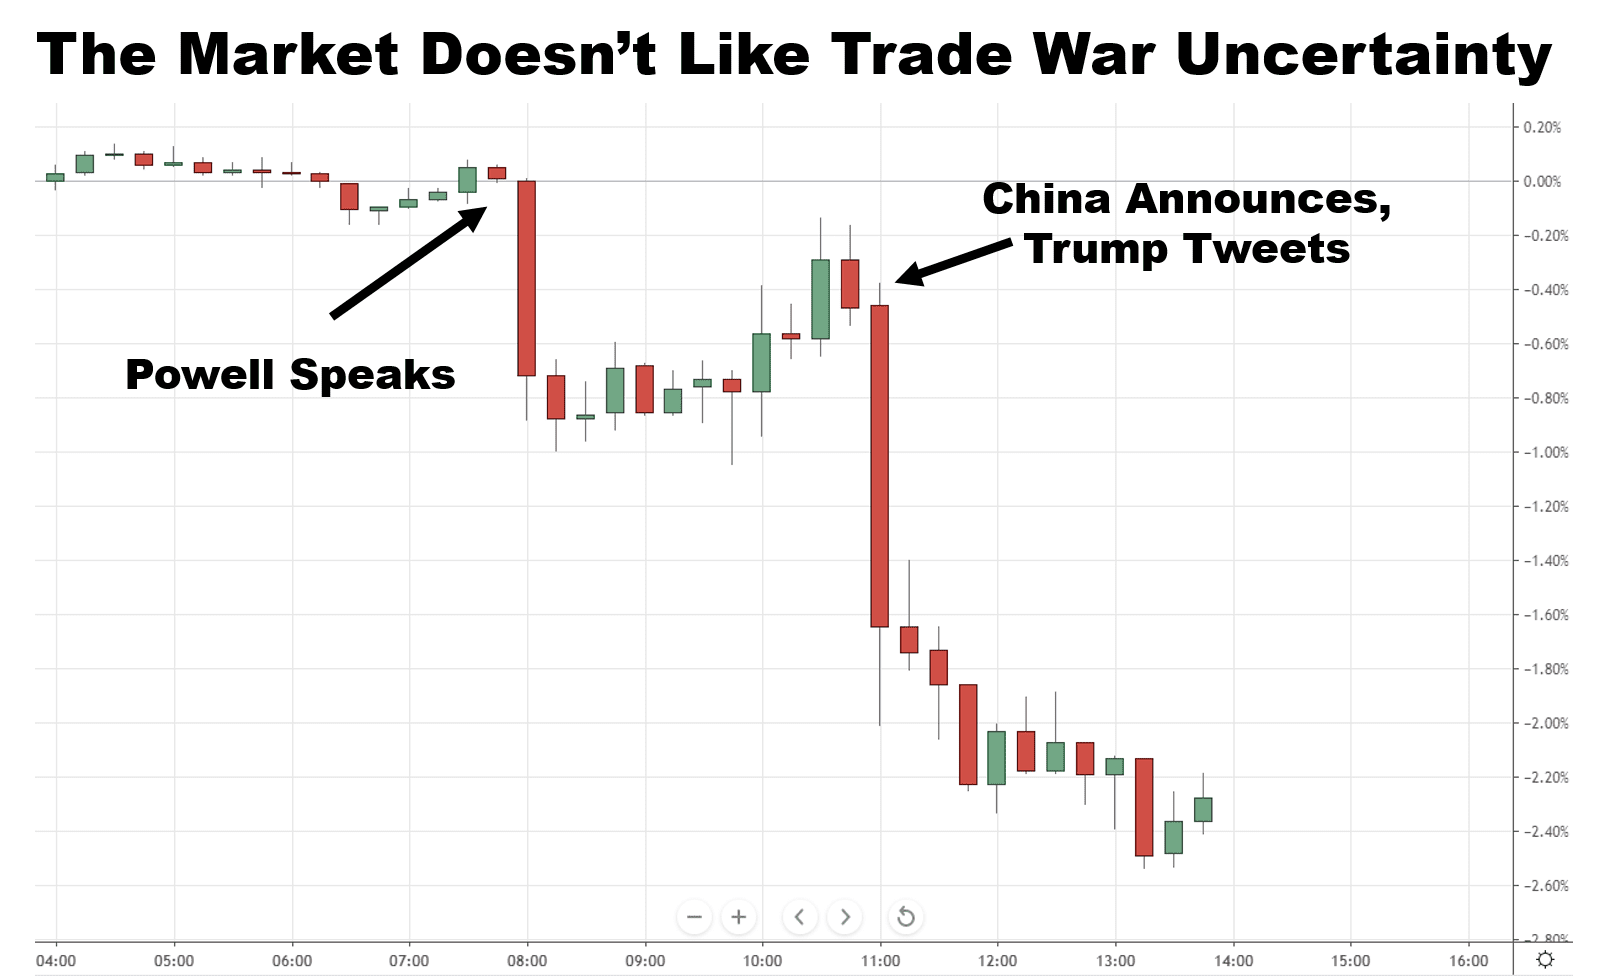 Trade War Talk Triggers Sellers to Flee Uncertainty